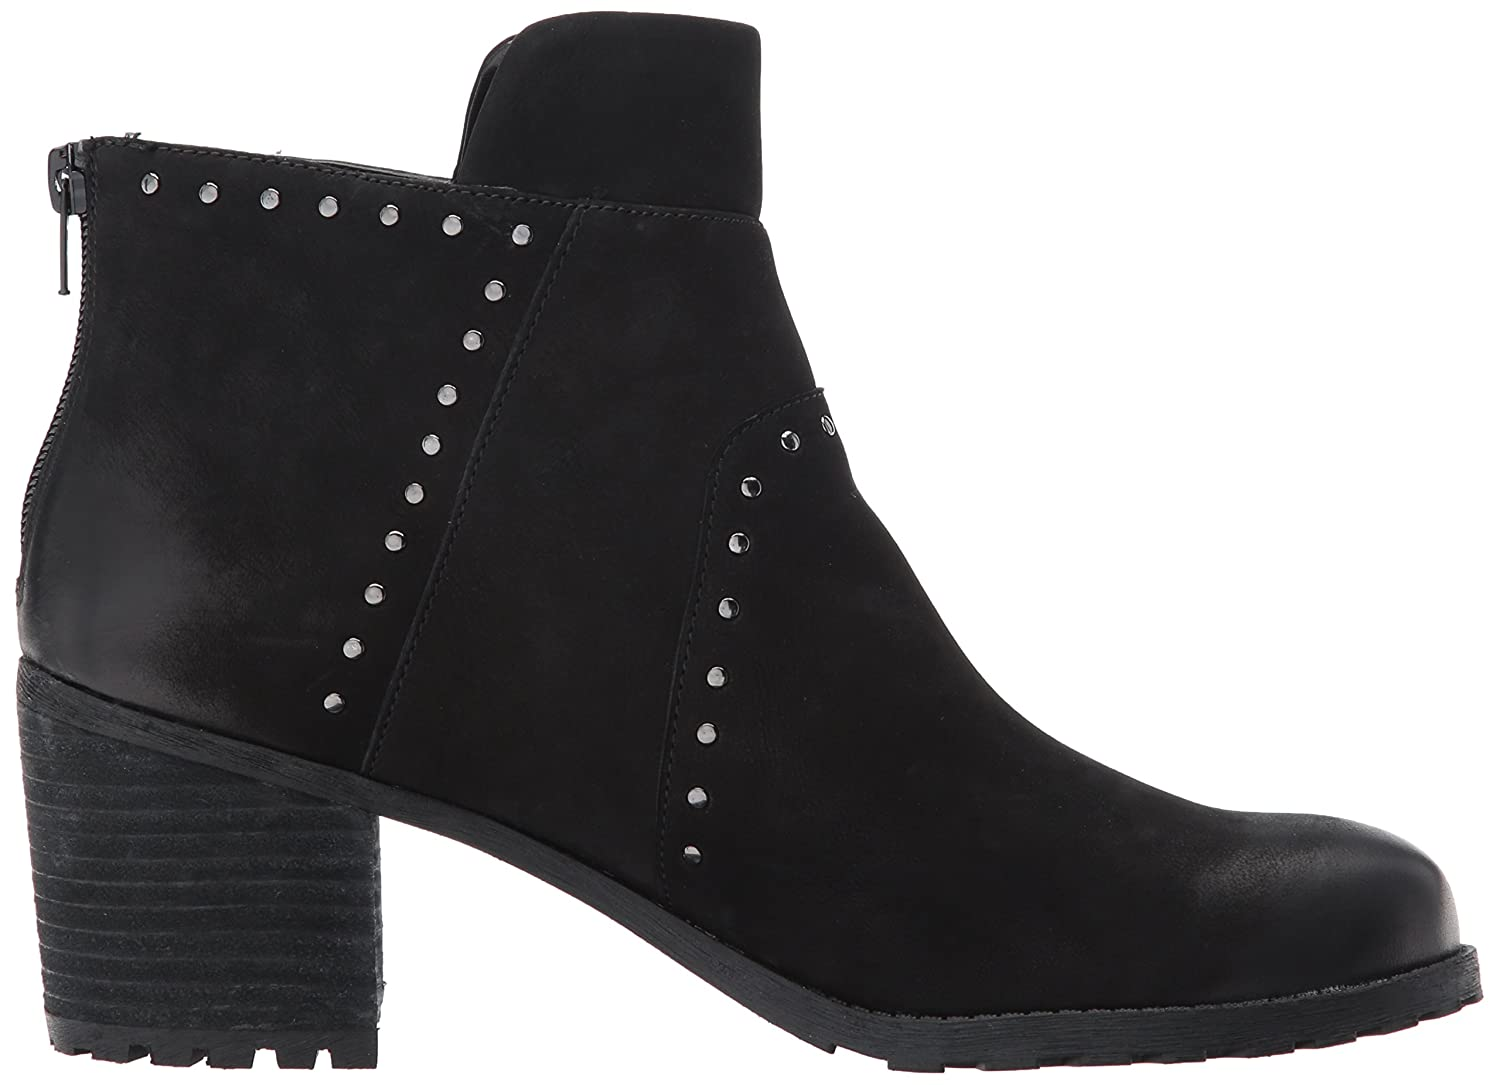 Aerosoles Women's Incentive B(M) Ankle Boot B073HG2RDX 12 B(M) Incentive US|Black Nubuck 99ba26